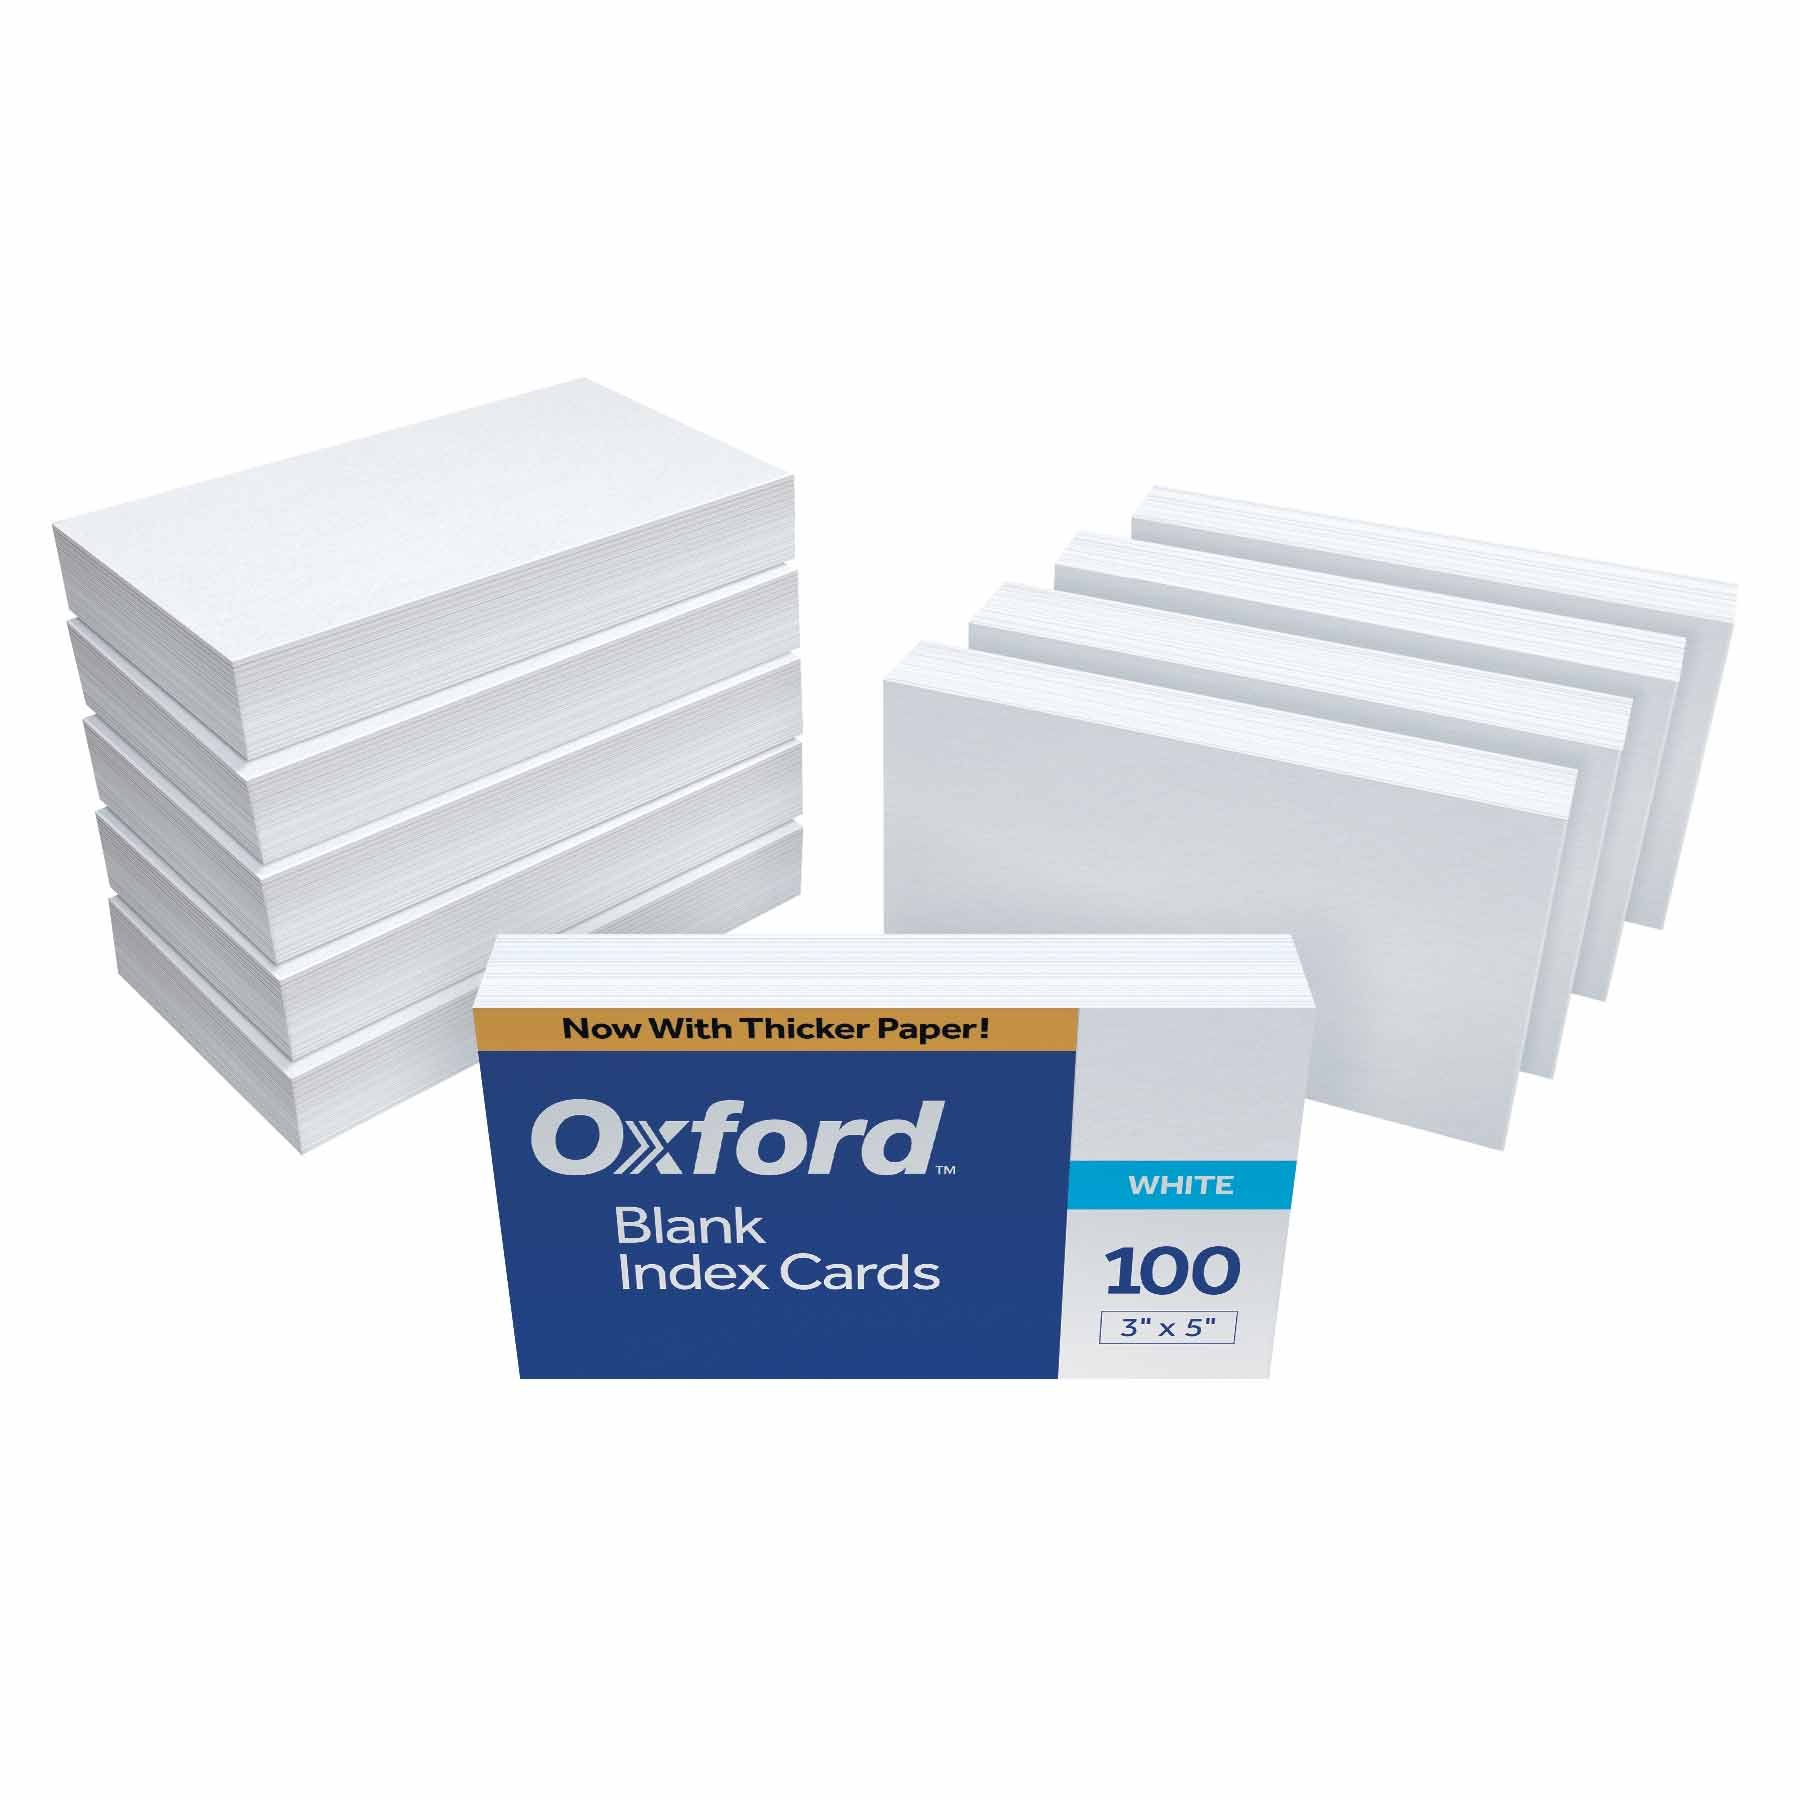 Oxford Blank Index Cards, 3'' x 5'', White, 1,000 Cards (10 Packs of 100) (30) by Oxford